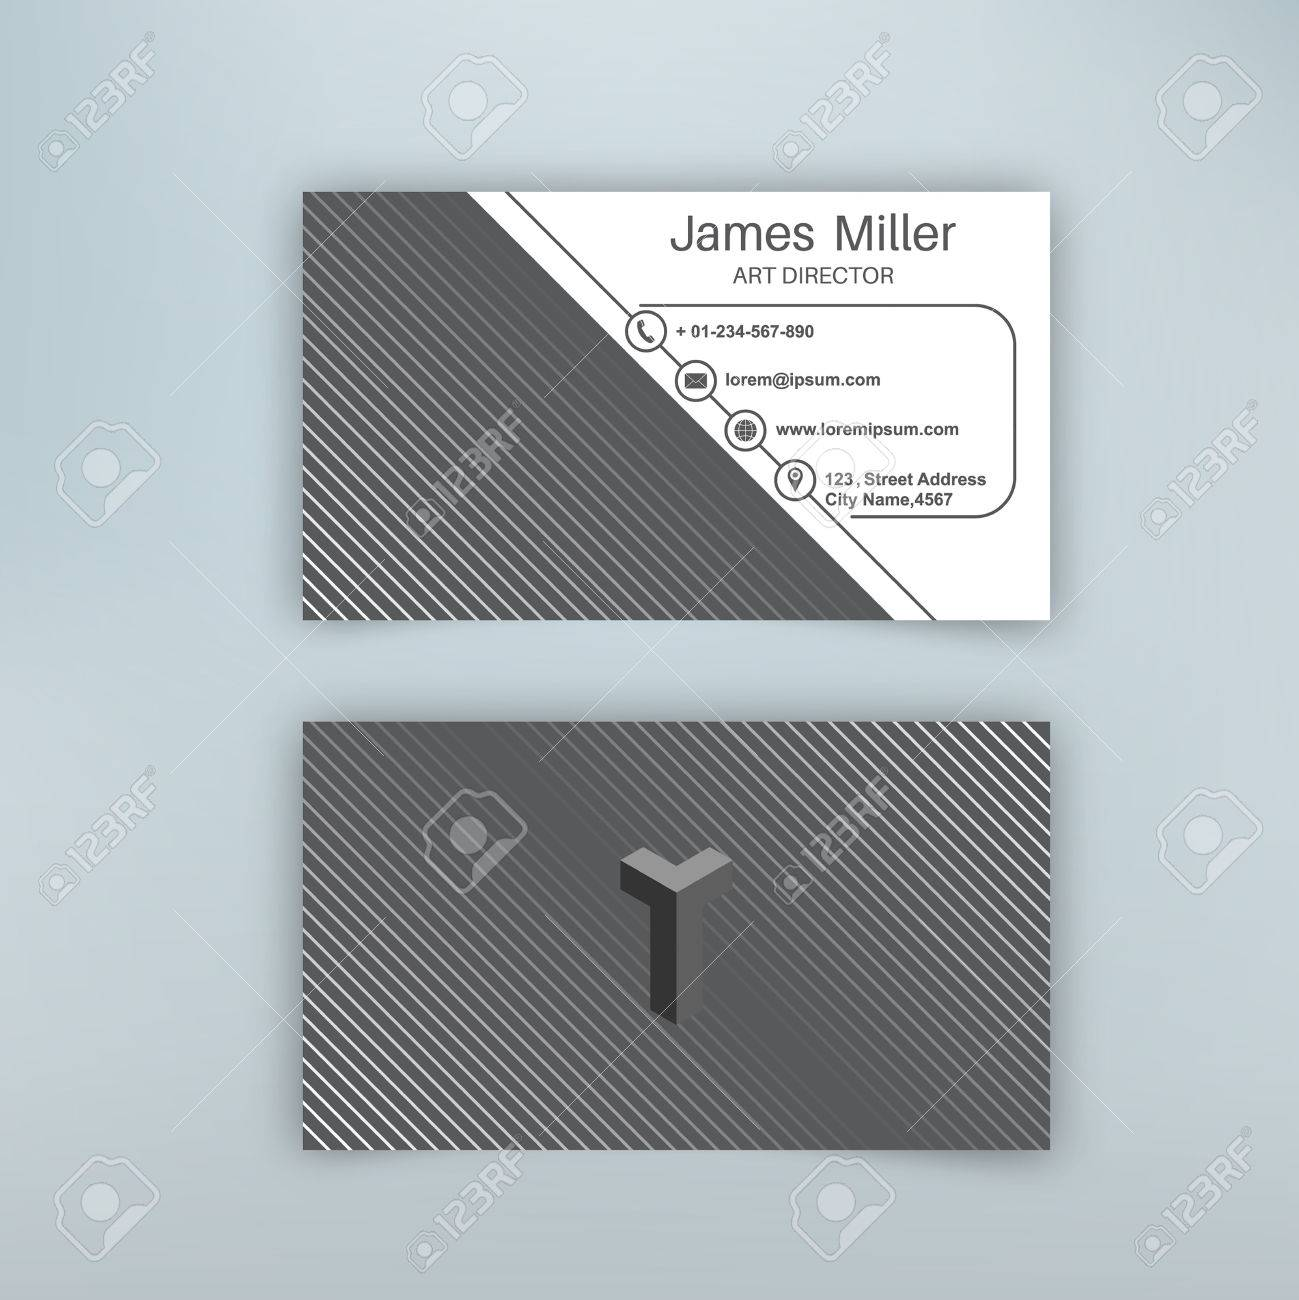 Business card blank template with textured background from thin business card blank template with textured background from thin diagonal lines minimal elegant vector design wajeb Choice Image